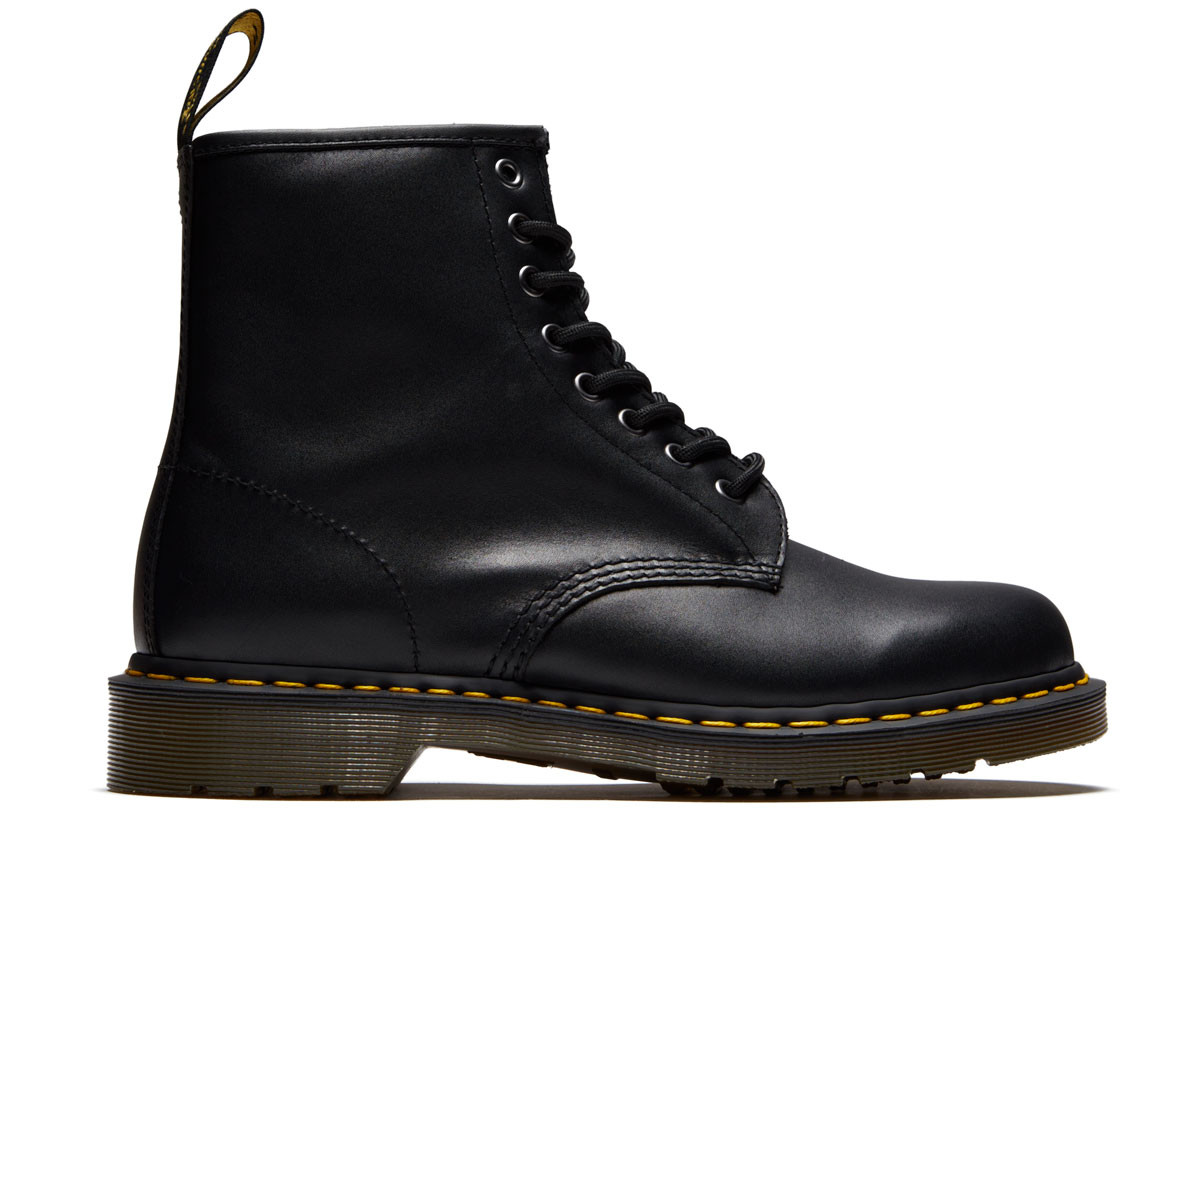 fa4337eb85e Dr. Martens 1460 8 Eye Nappa Leather Boots